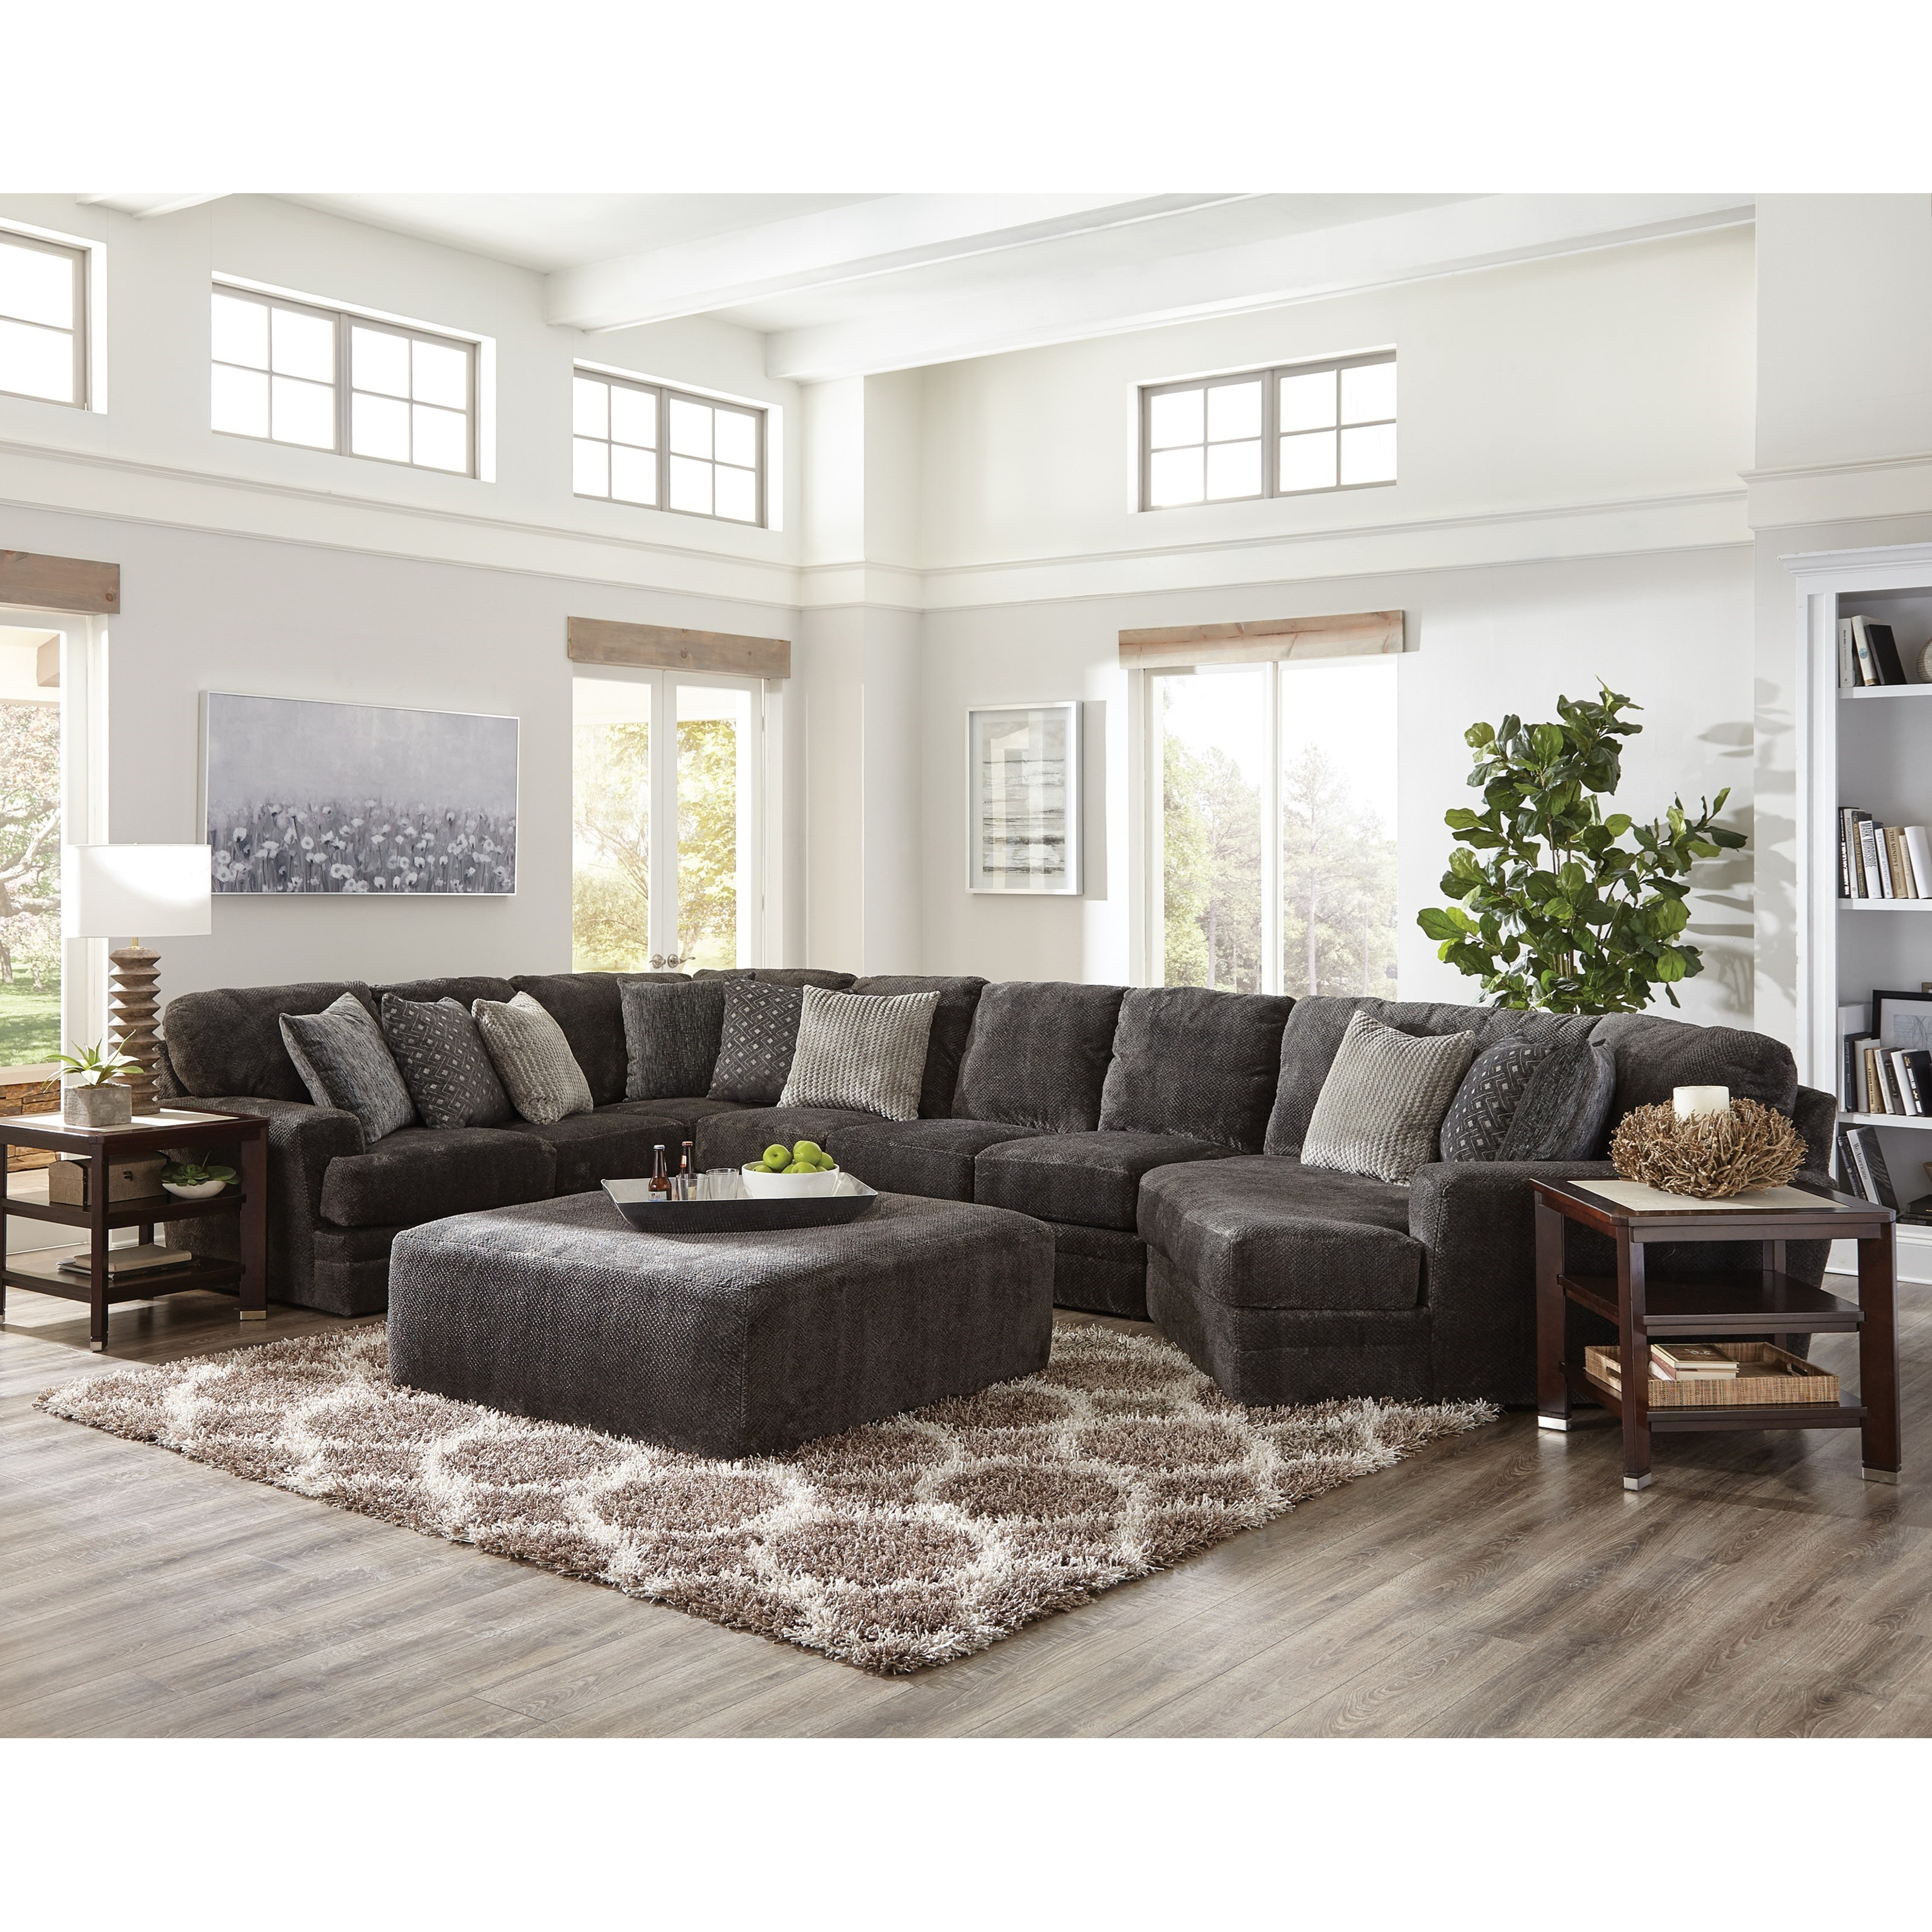 Mammoth Stationary Living Room Group by Jackson Furniture at Johnny Janosik